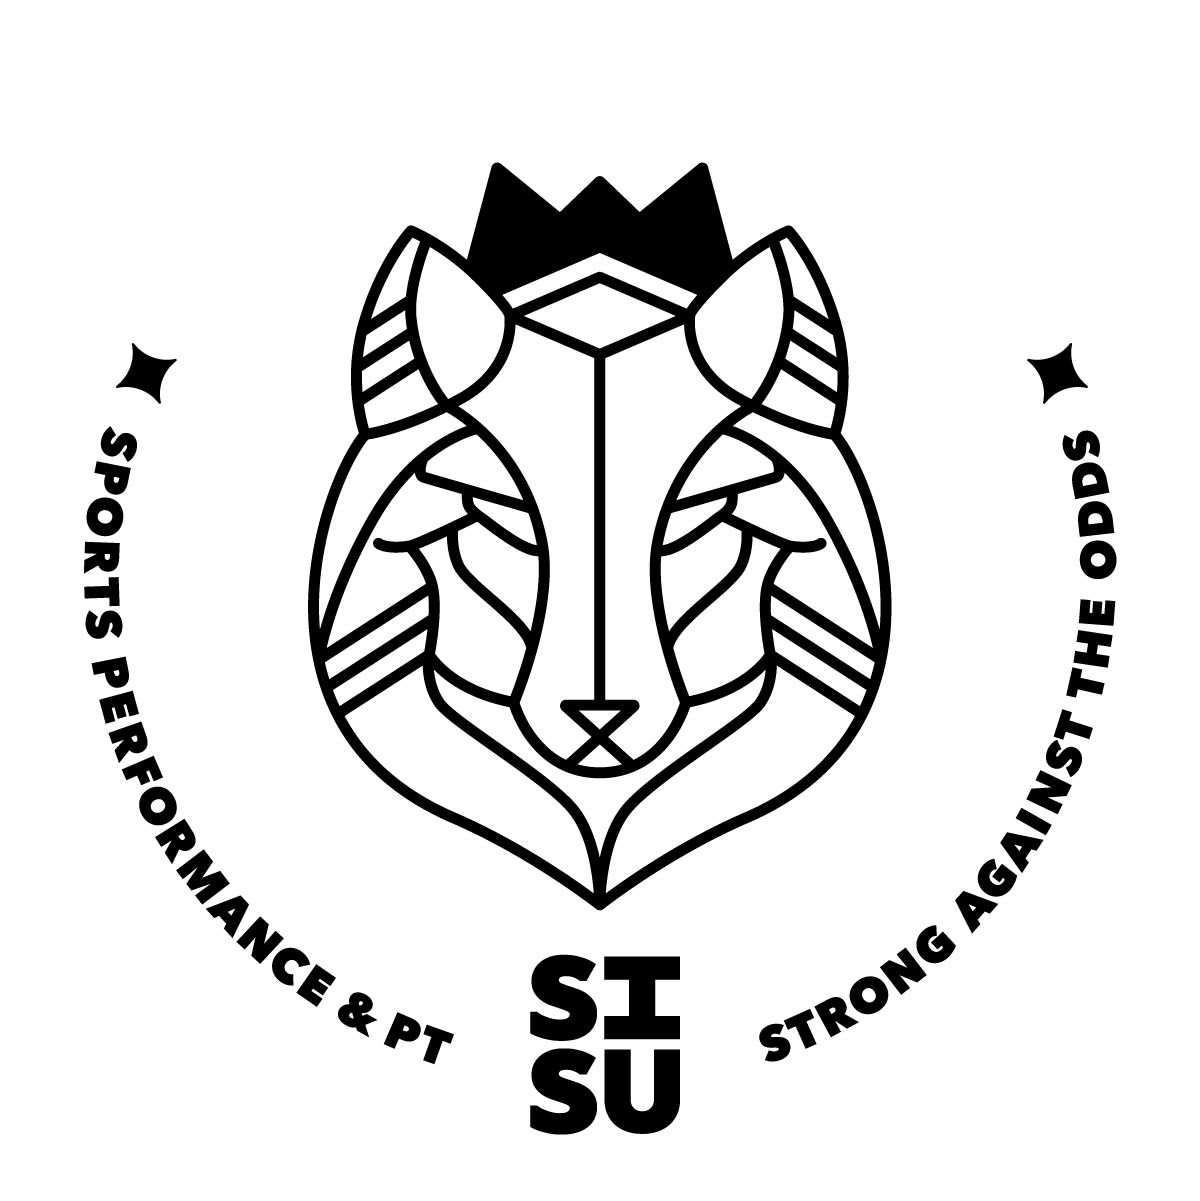 Sisu_Logos_Outlined_Primary_round.png